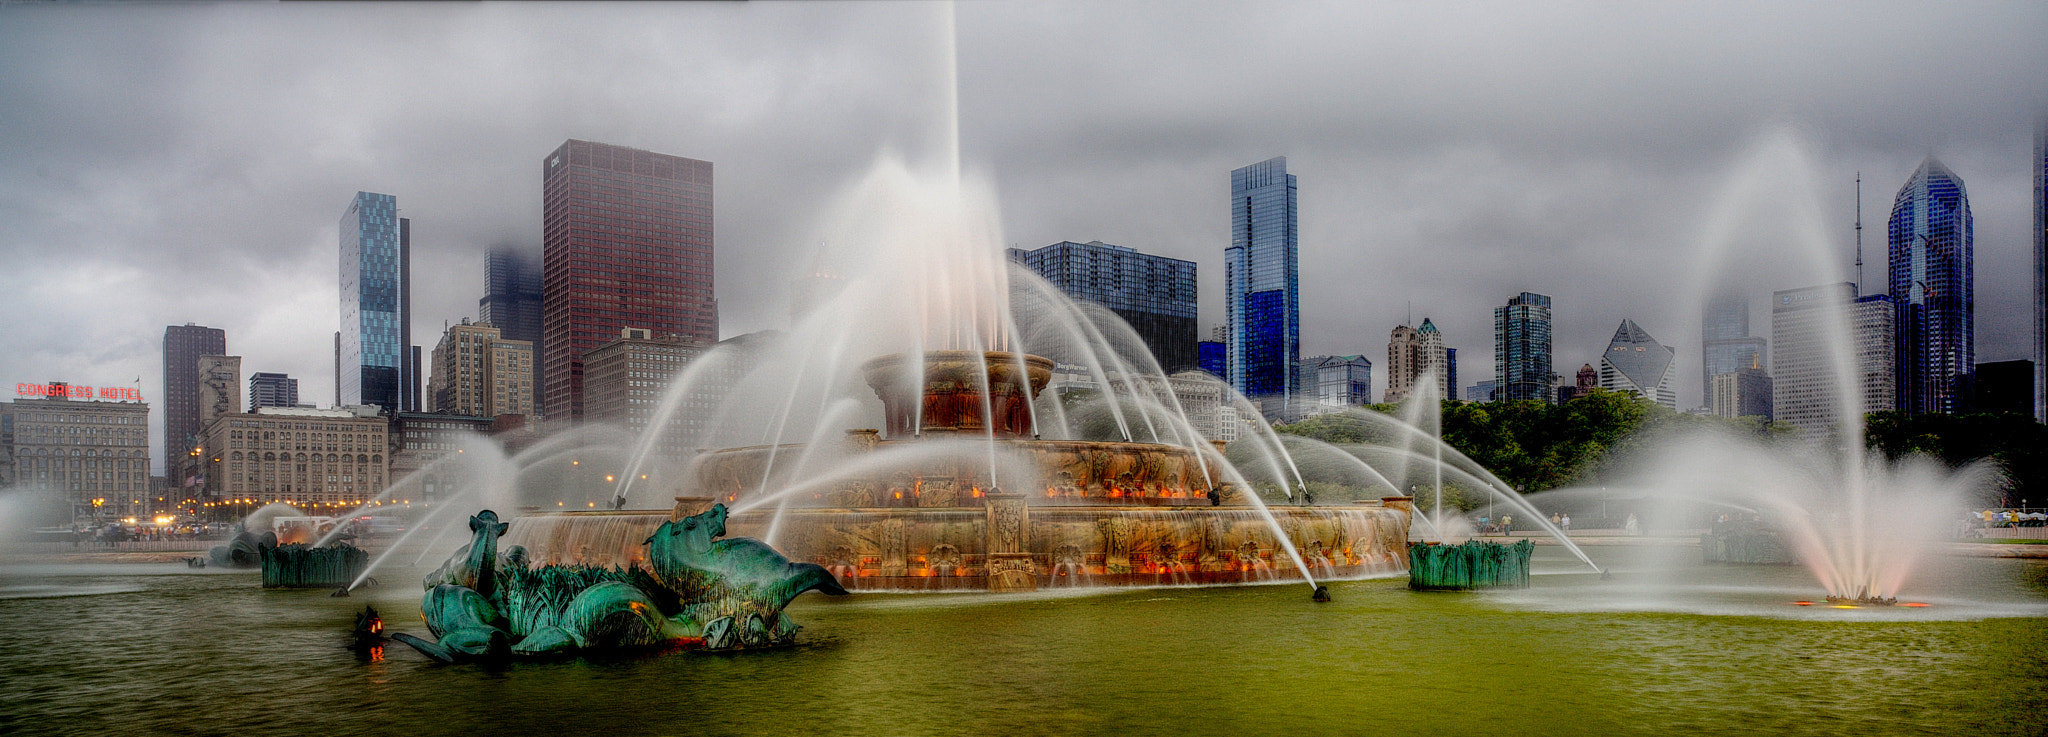 Photograph Buckingham Fountain by Dave Dow on 500px